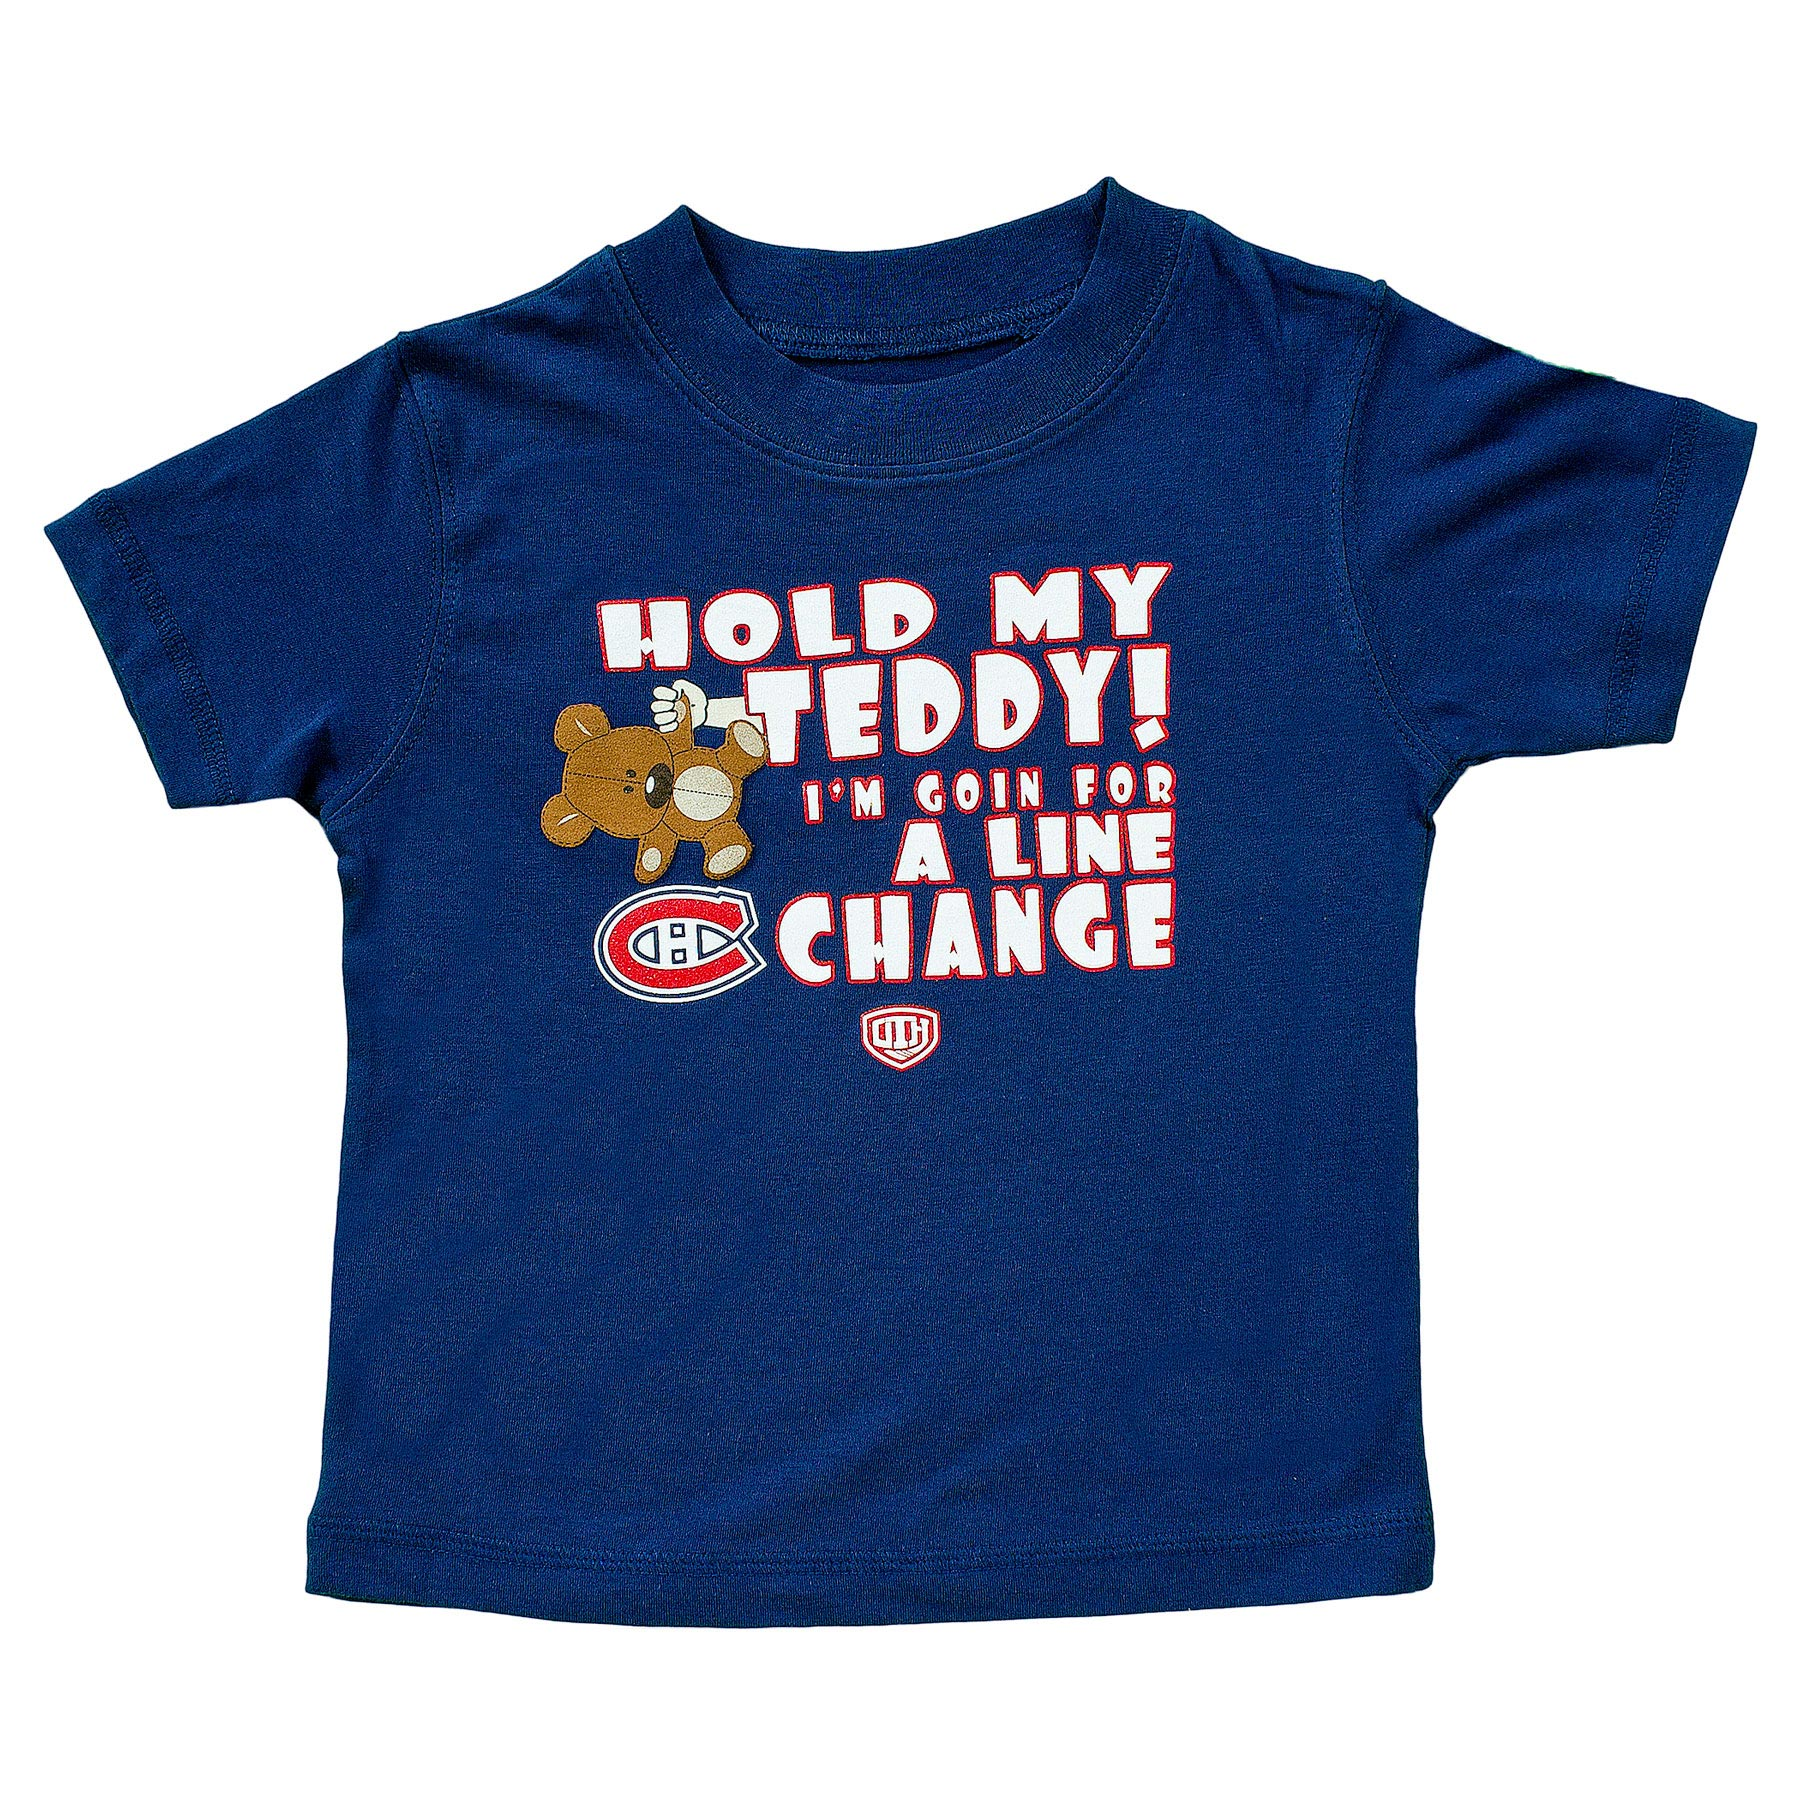 9bbf1bdc6 Montreal Canadiens Toddler Teddy T-Shirt - Old Time Hockey | Walmart ...